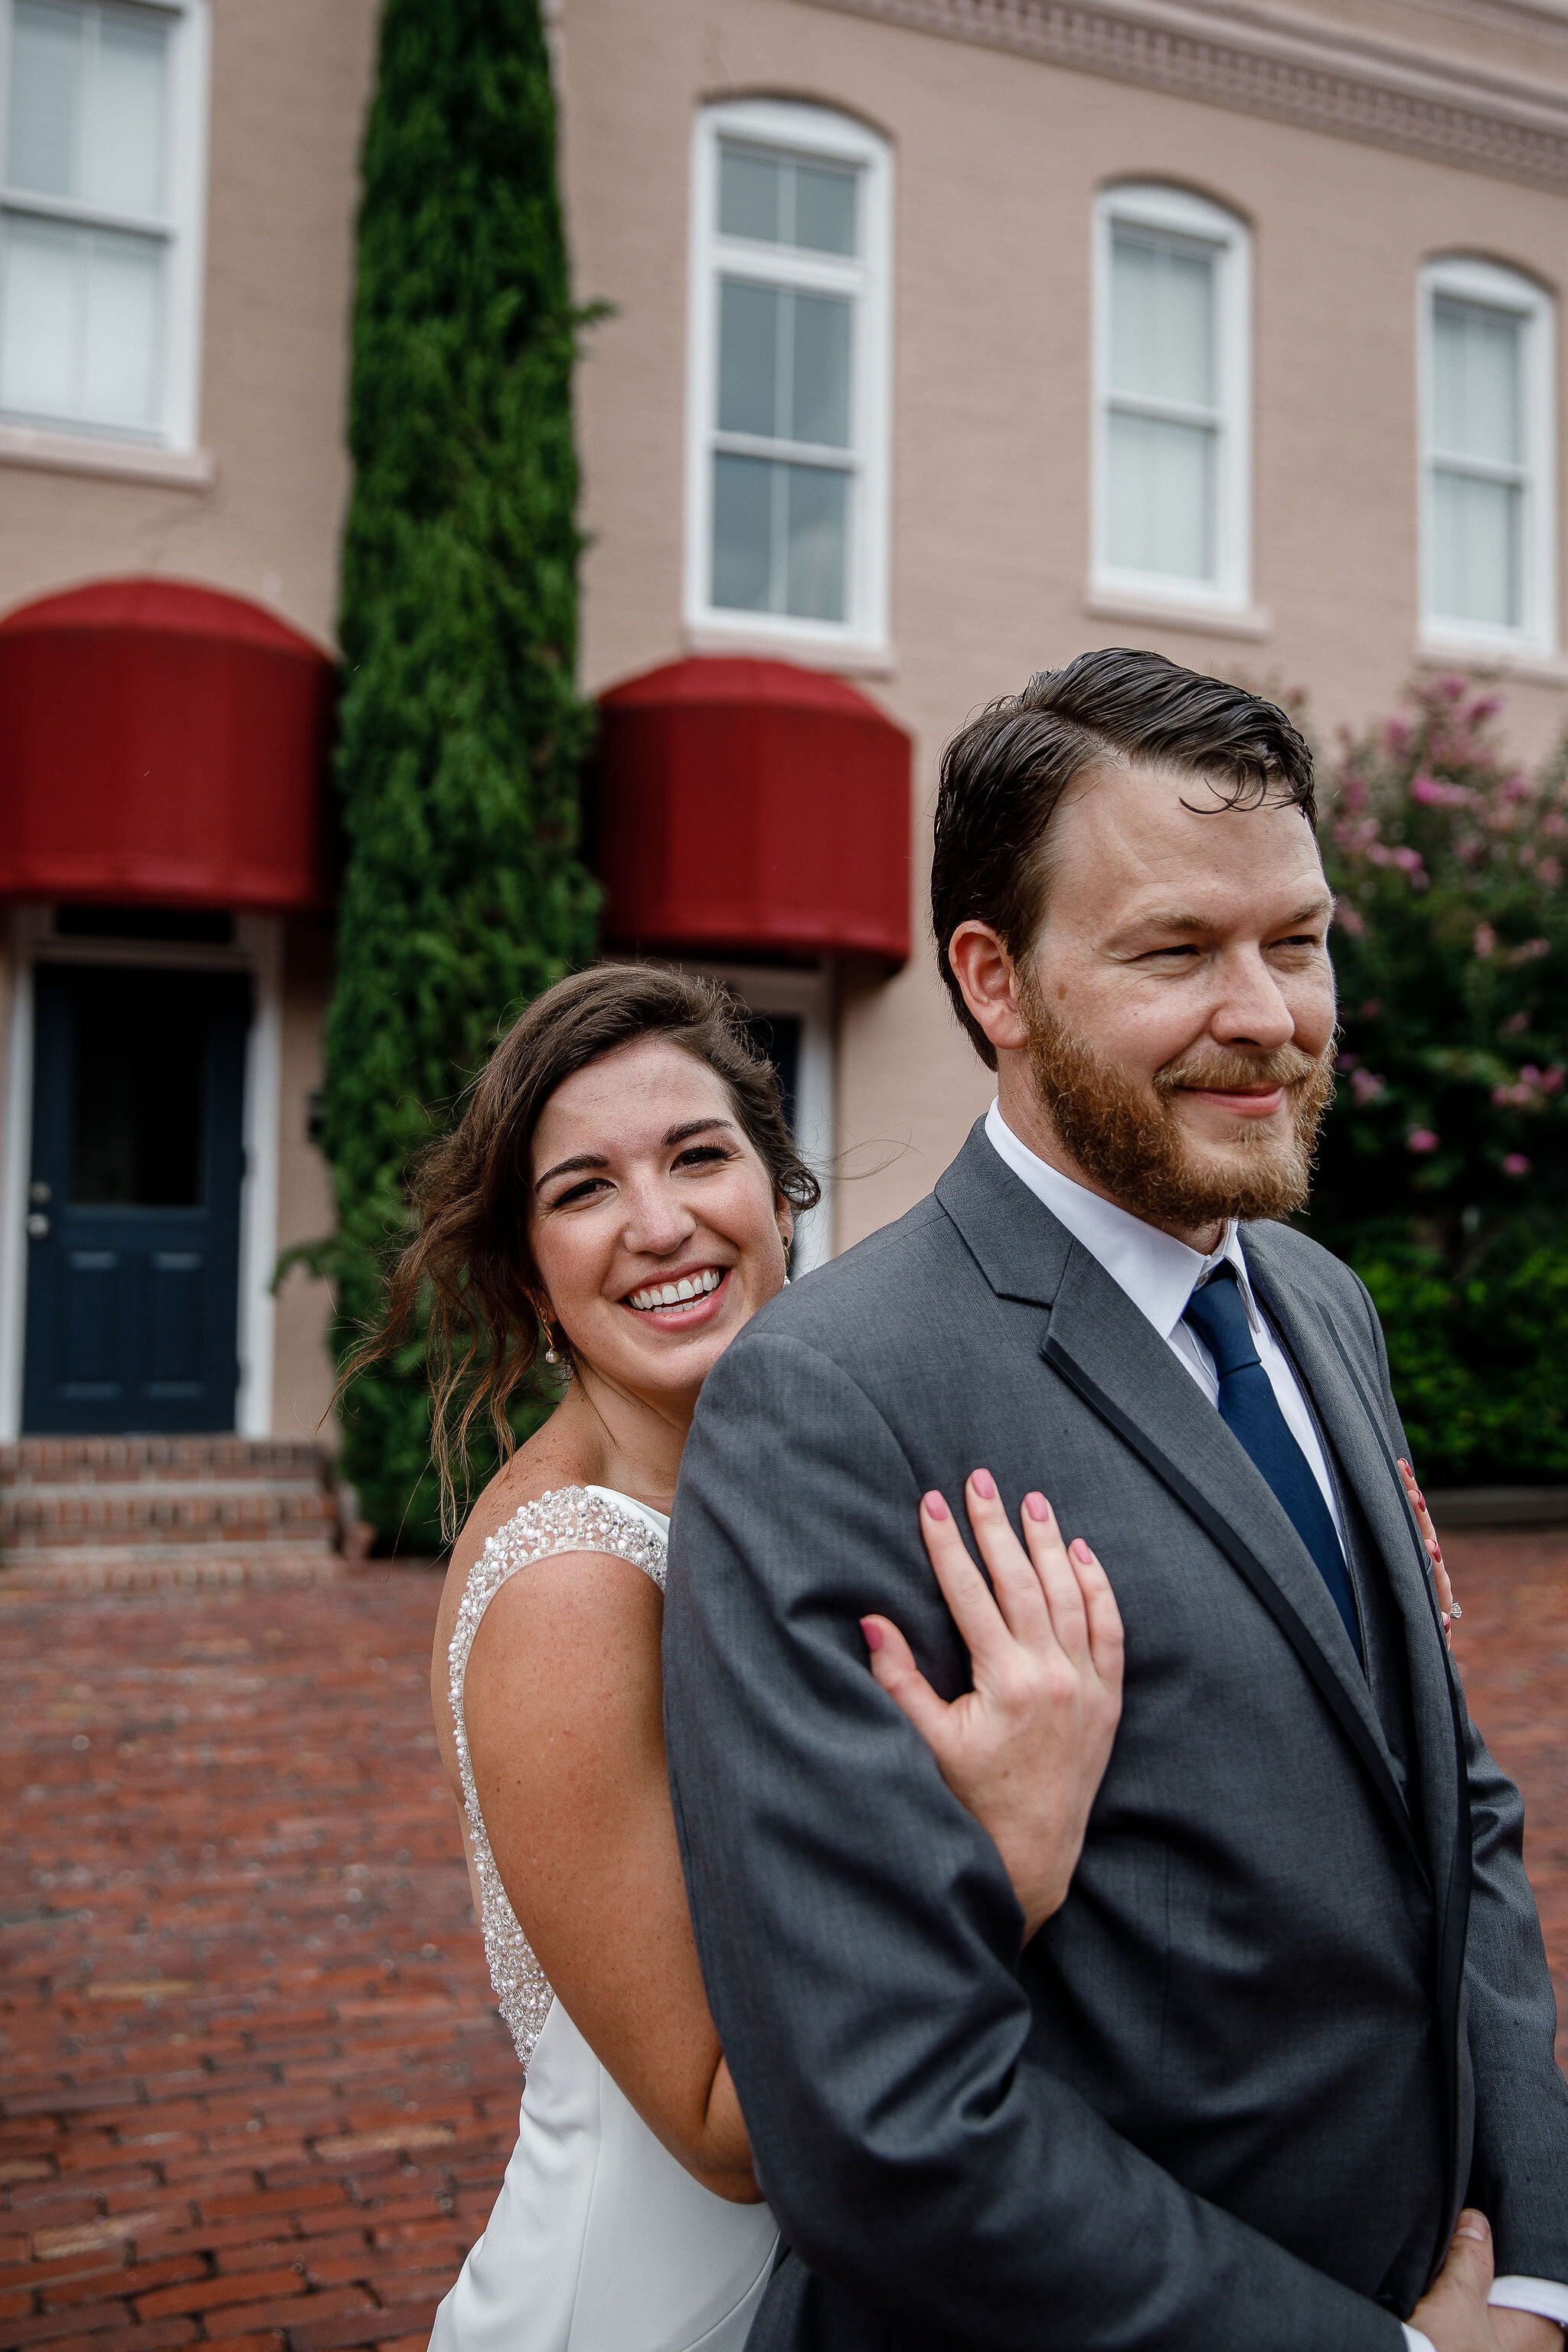 ivory-and-beau-blog-couple-and-florals-shannon-and-mike-wedding-savannah-wedding-planner-savannah-florist-savannah-wedding-southern-florist-southern-wedding-alida-hotel-202.jpg